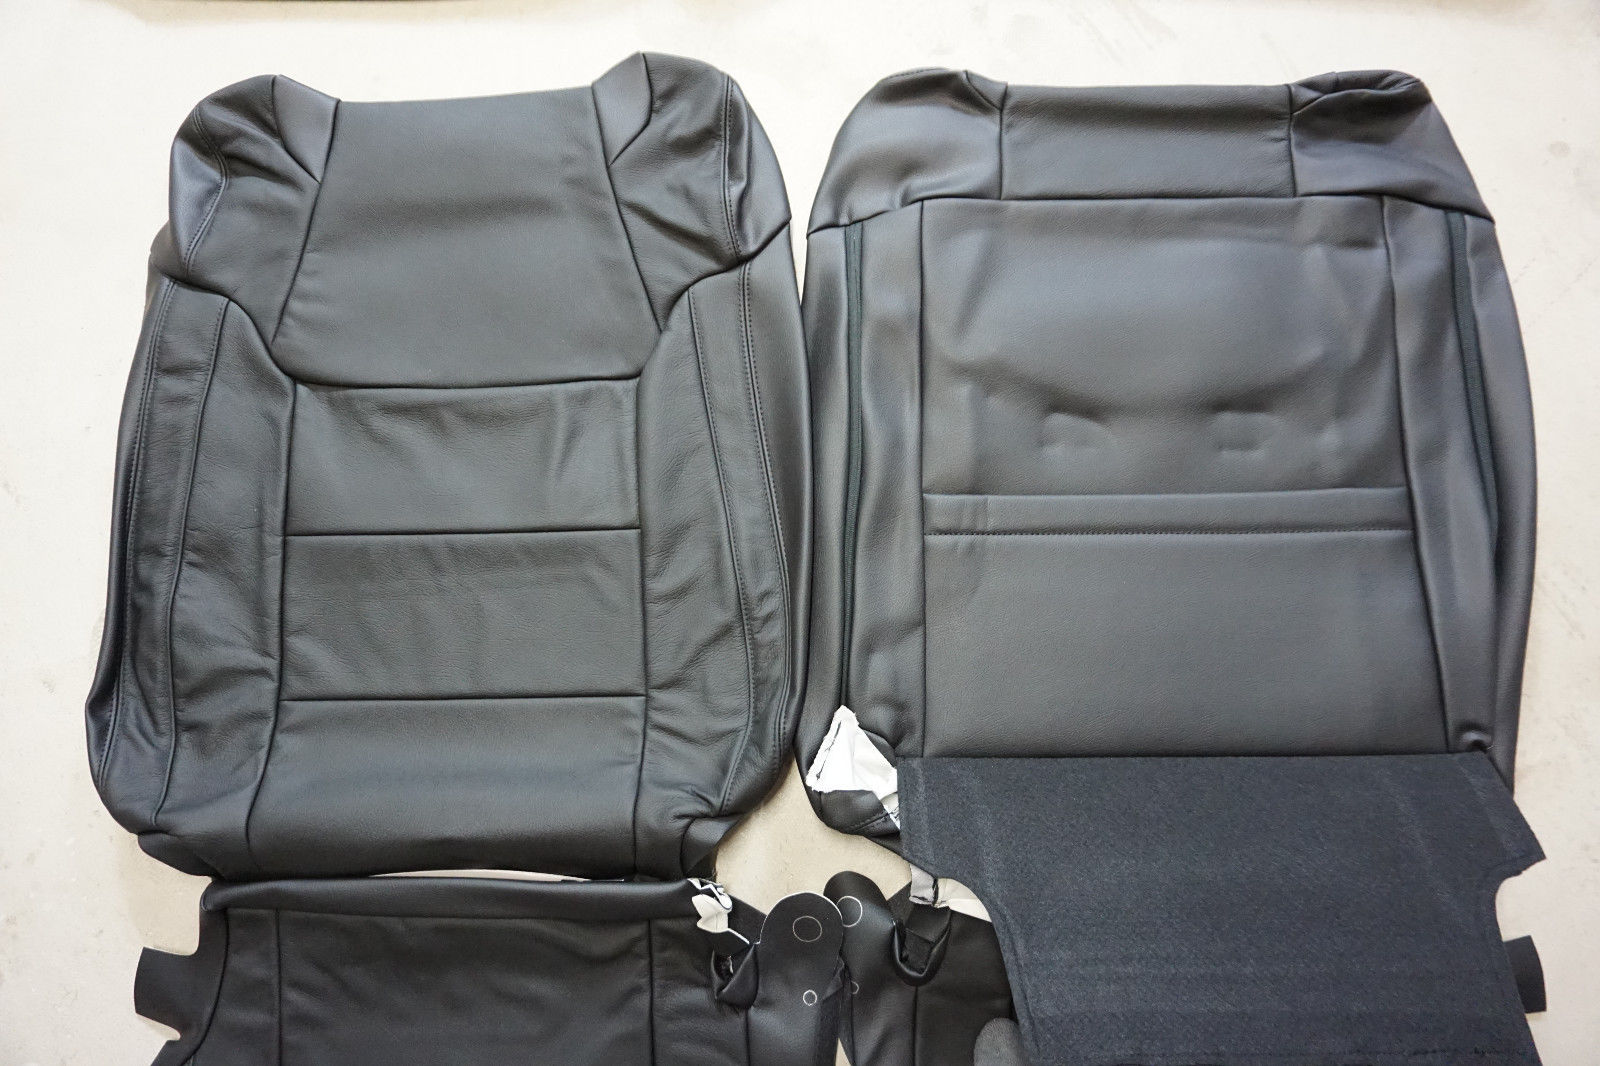 Trd Pro Tundra >> 2016-2019 Toyota Tundra Crewmax SR5 / TRD PRO leather seat covers 2019 - MyCarBoard.com